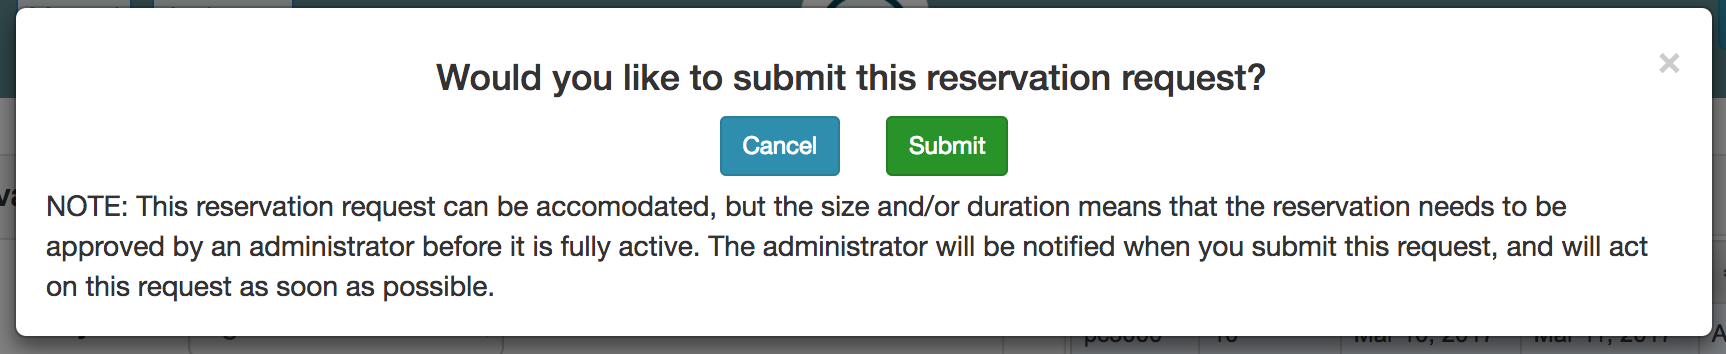 screenshots/apt/reservation-submit.png